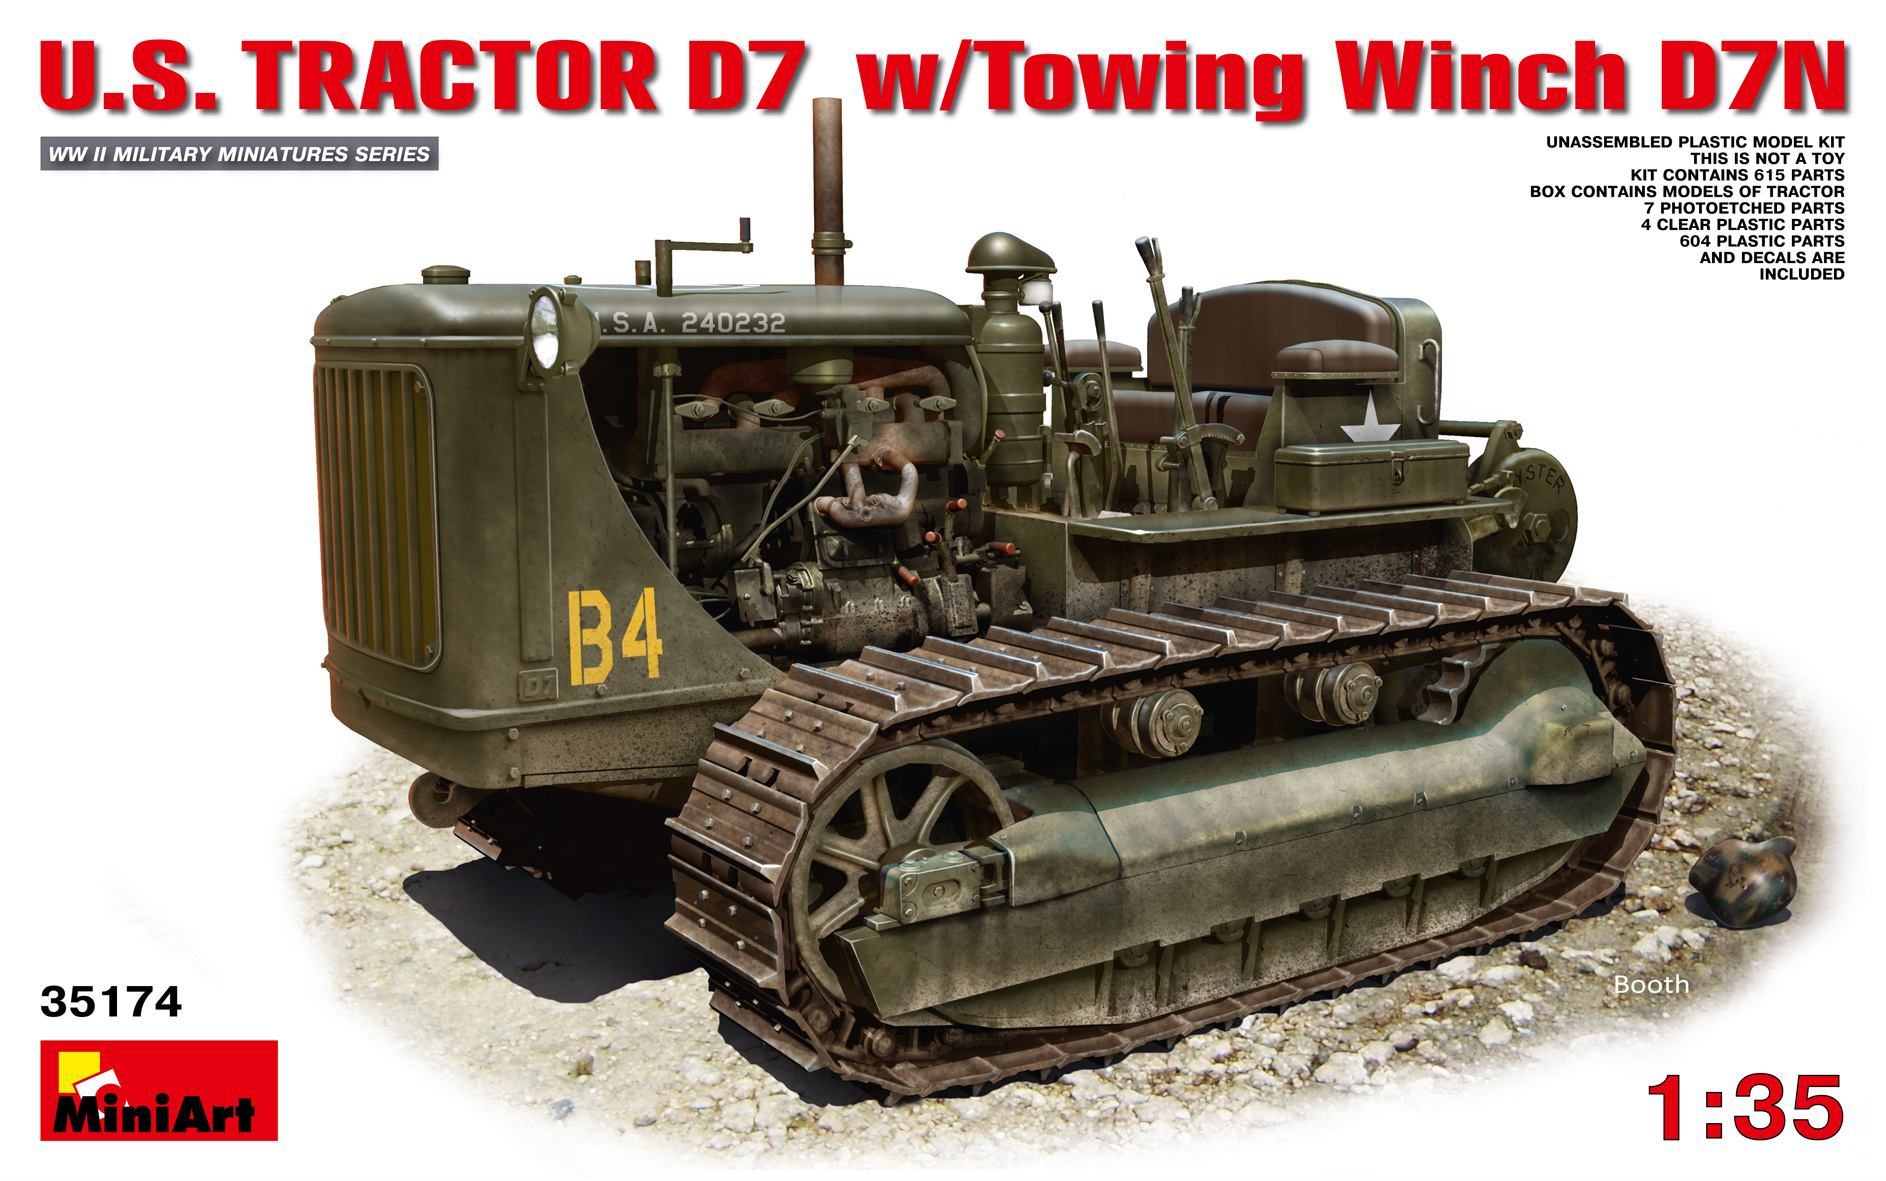 MiniArt U.S.Tractor D7 With Towing Winch D7N - Scale 1/35 - Mini Art - MIT35174